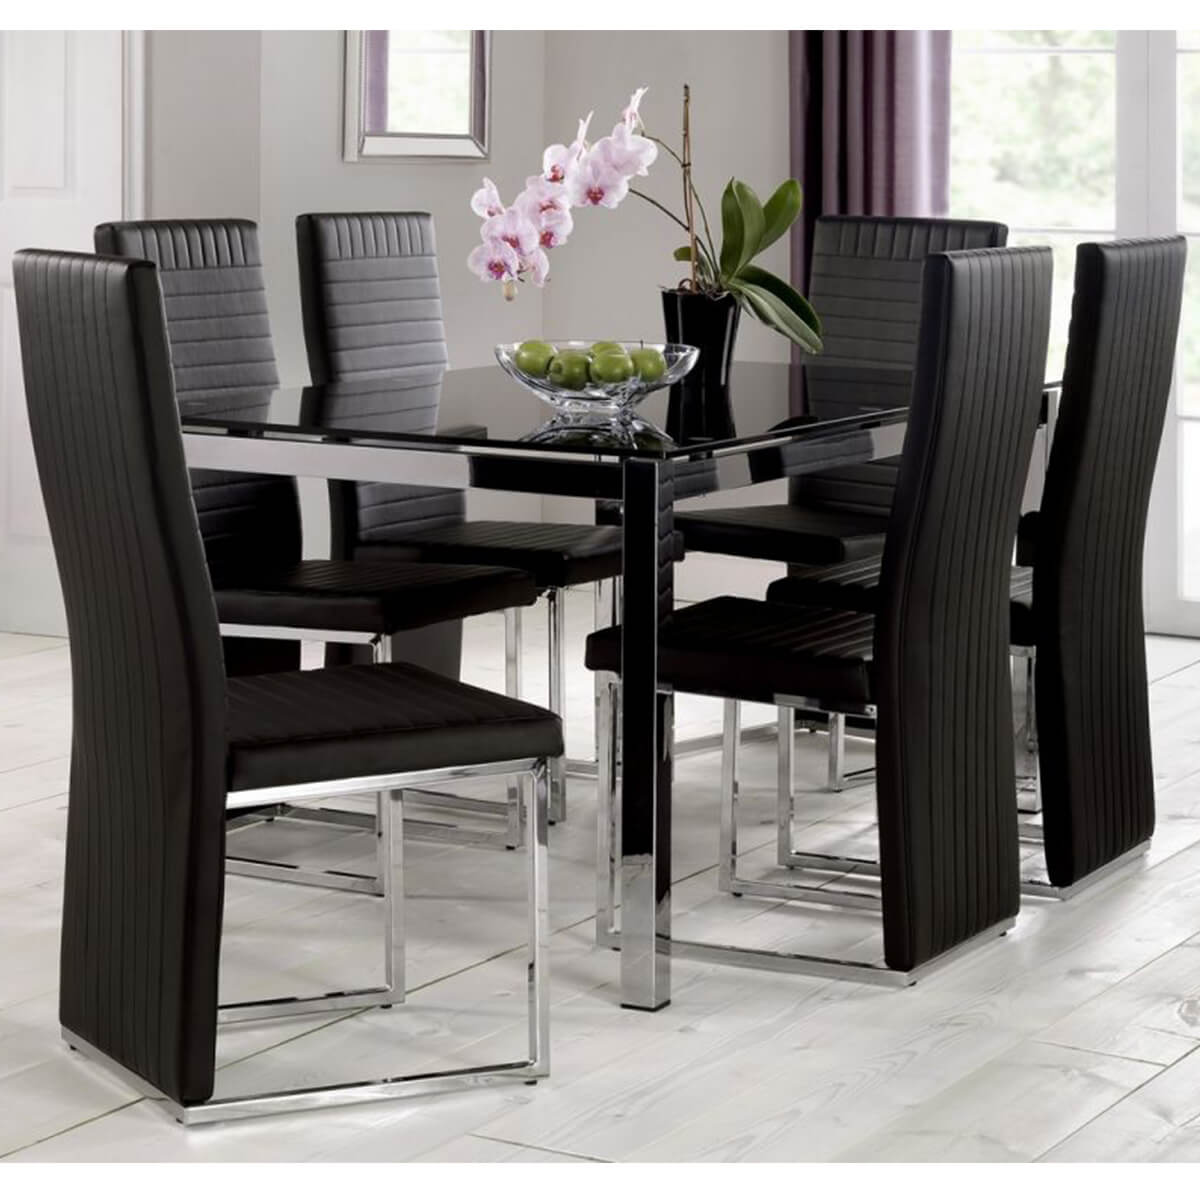 Tempo Black Dining Table With Black Chairs